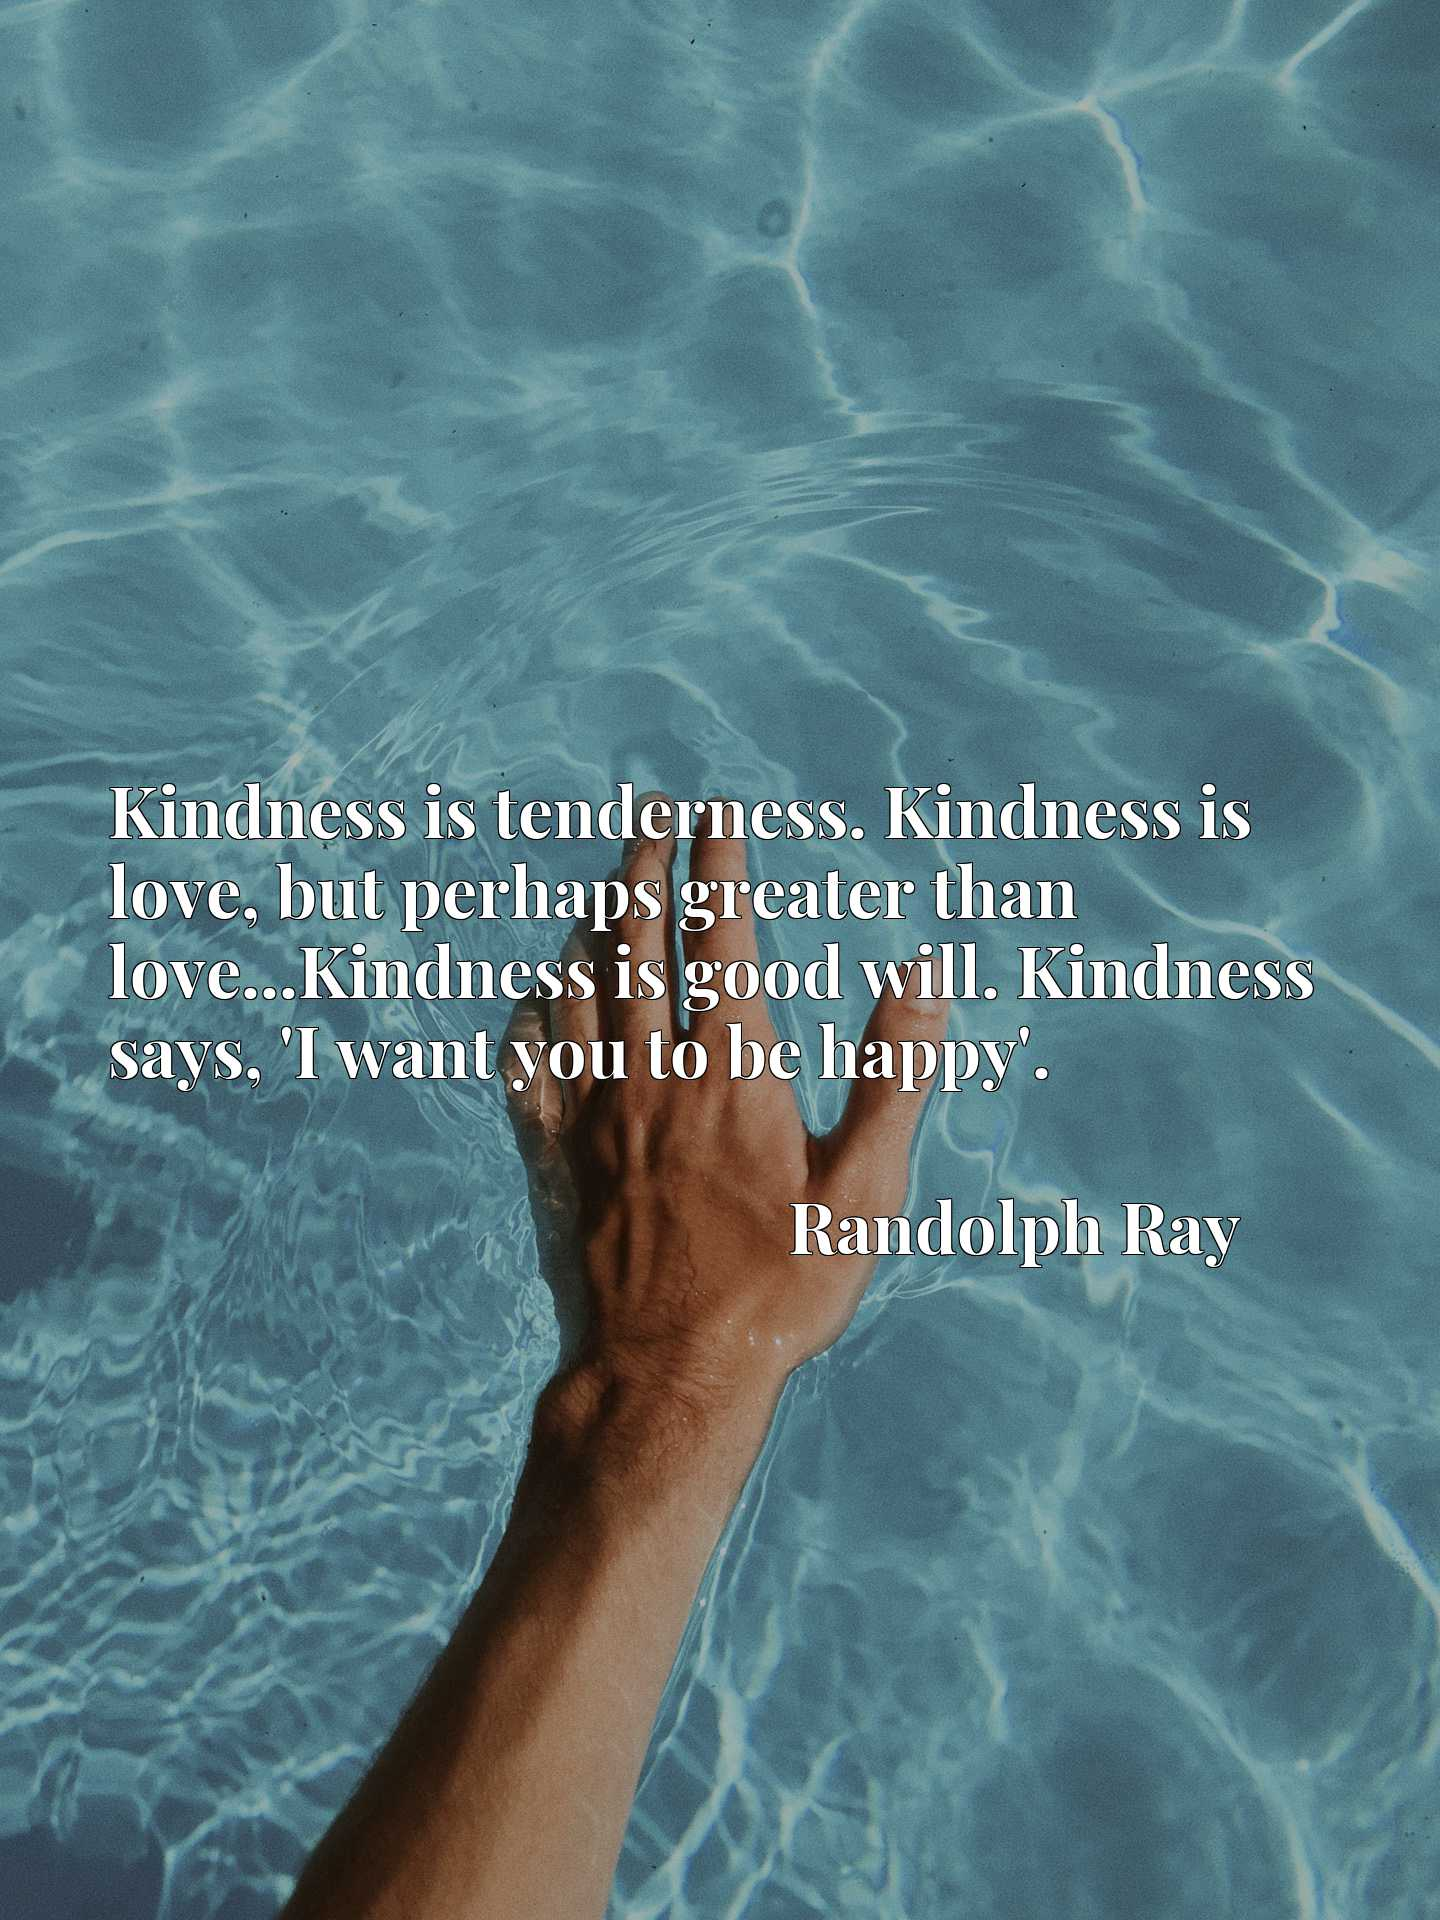 Kindness is tenderness. Kindness is love, but perhaps greater than love...Kindness is good will. Kindness says, 'I want you to be happy'.